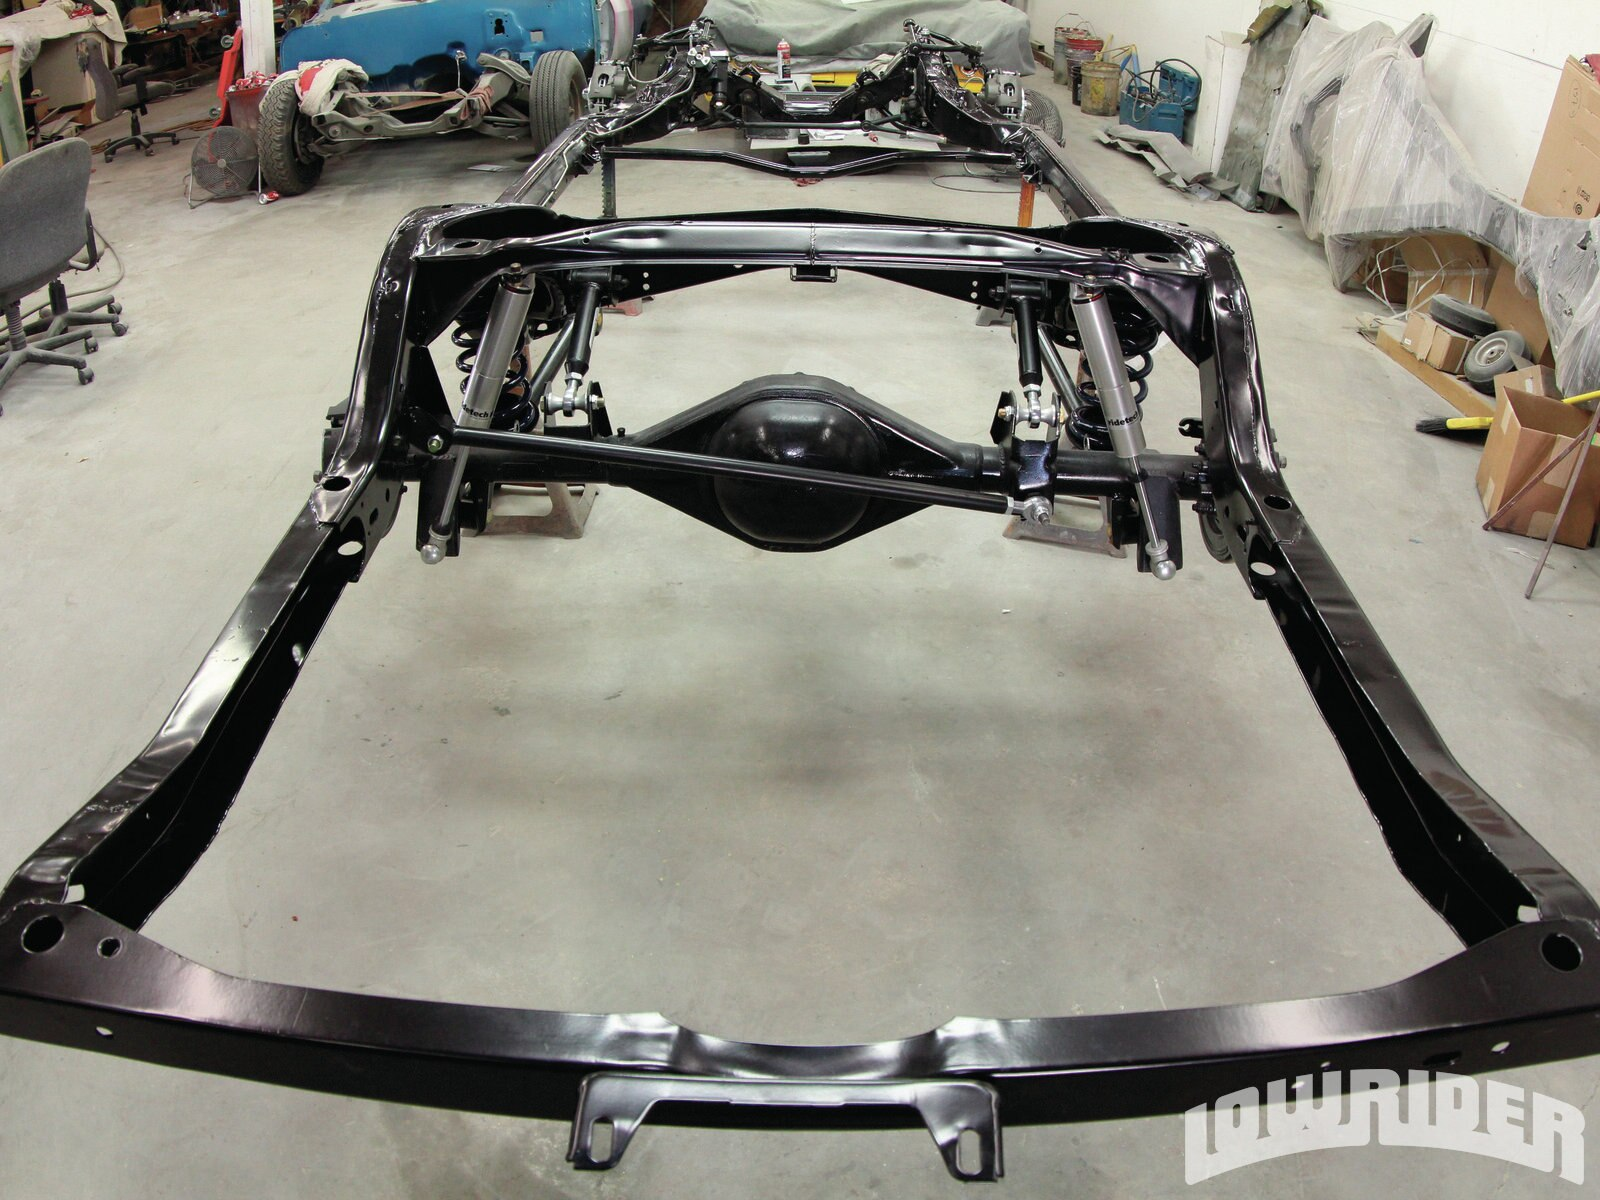 <strong>27</strong>. The complete powder coating will help withstand the wear and tear from the road.